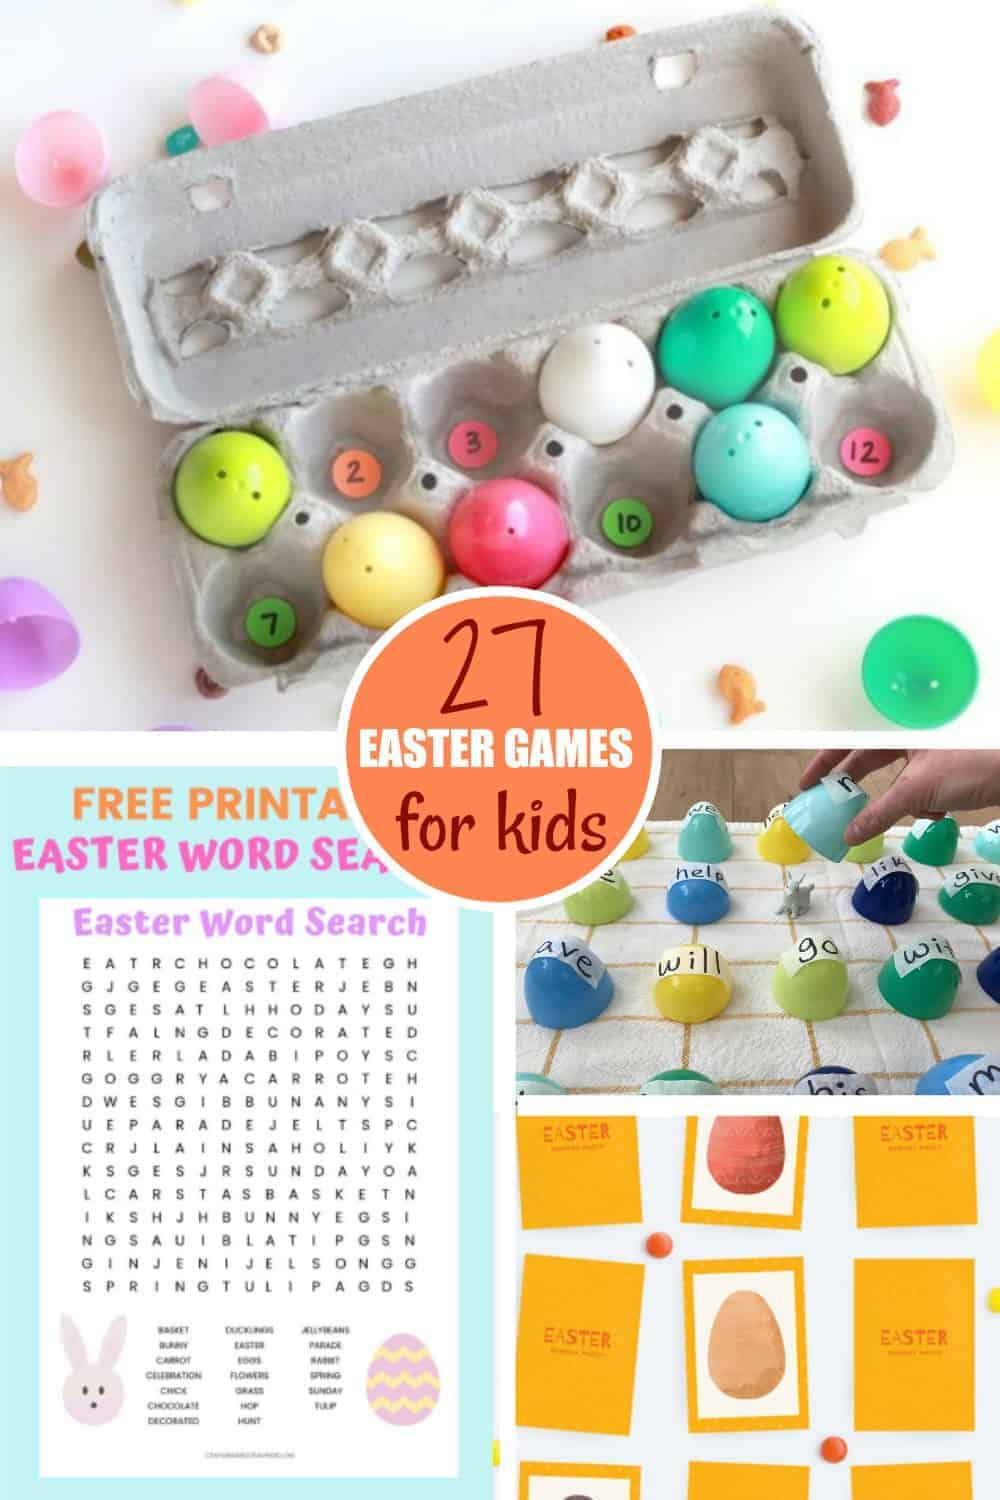 Four Easter games on a table